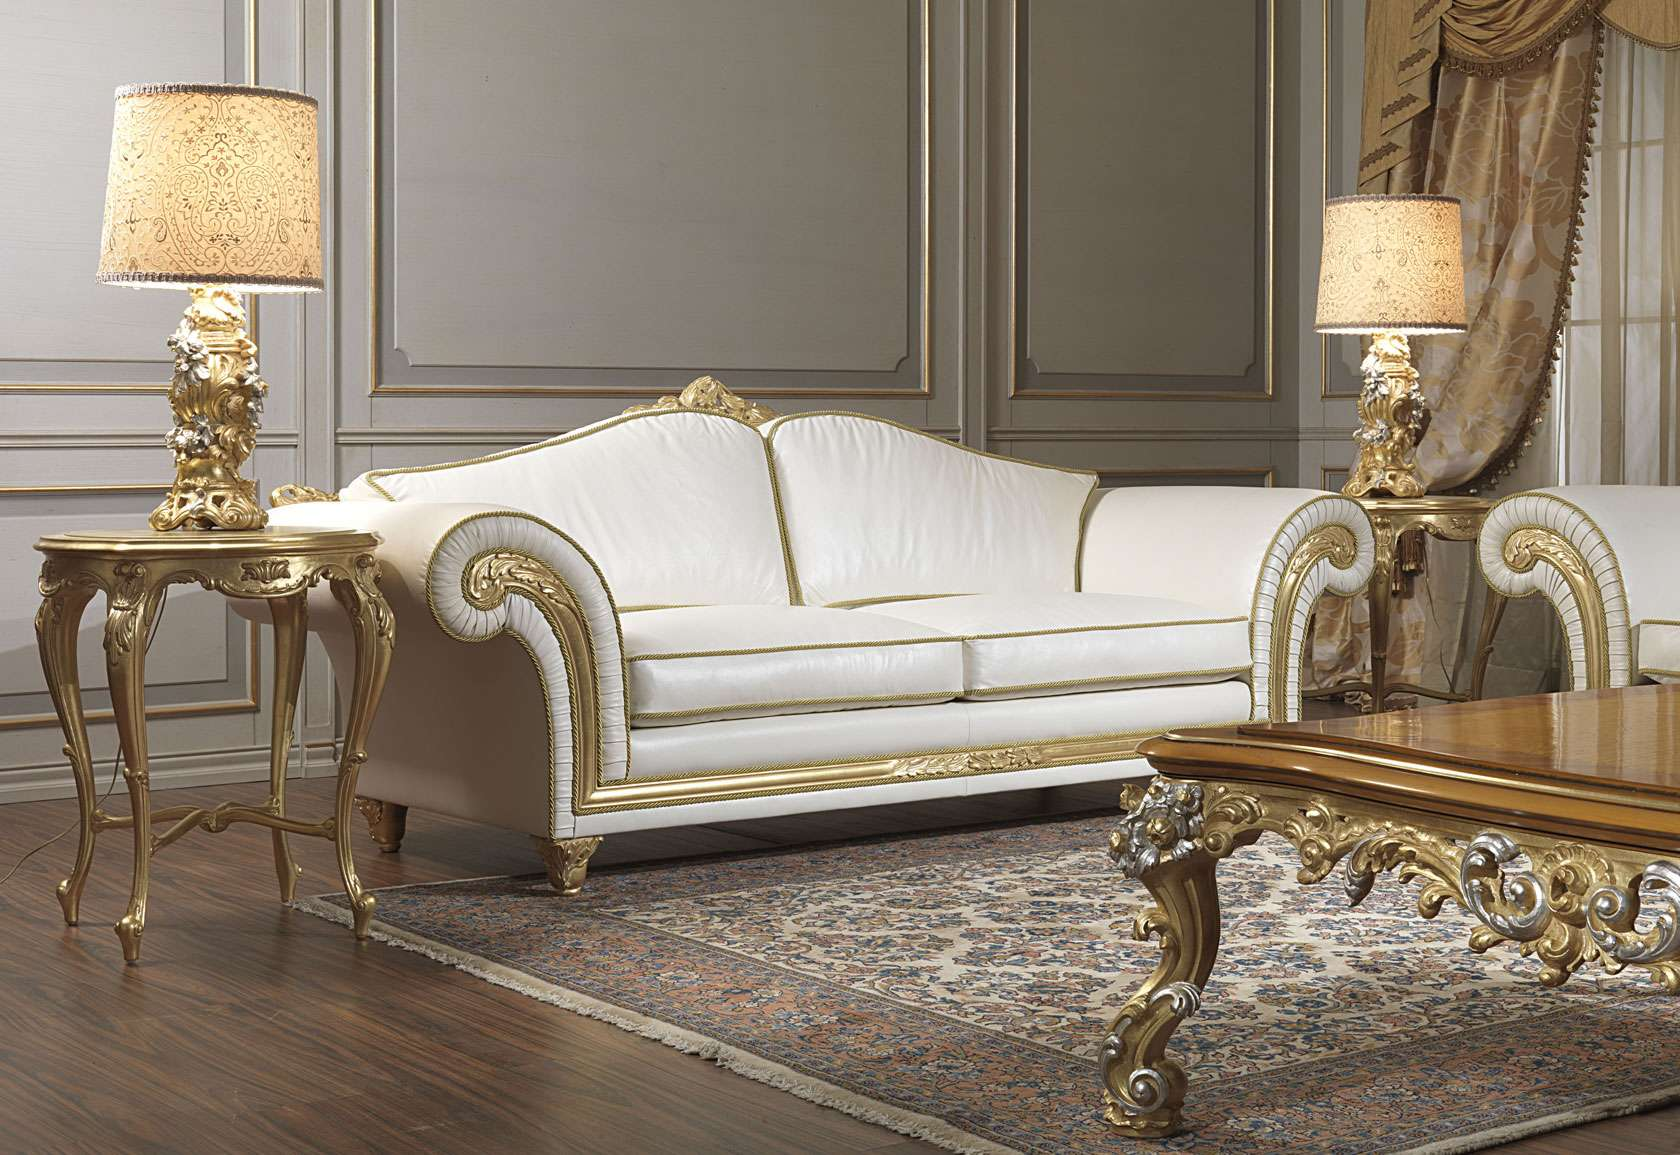 Classic Sofa Imperial In White Leather Vimercati